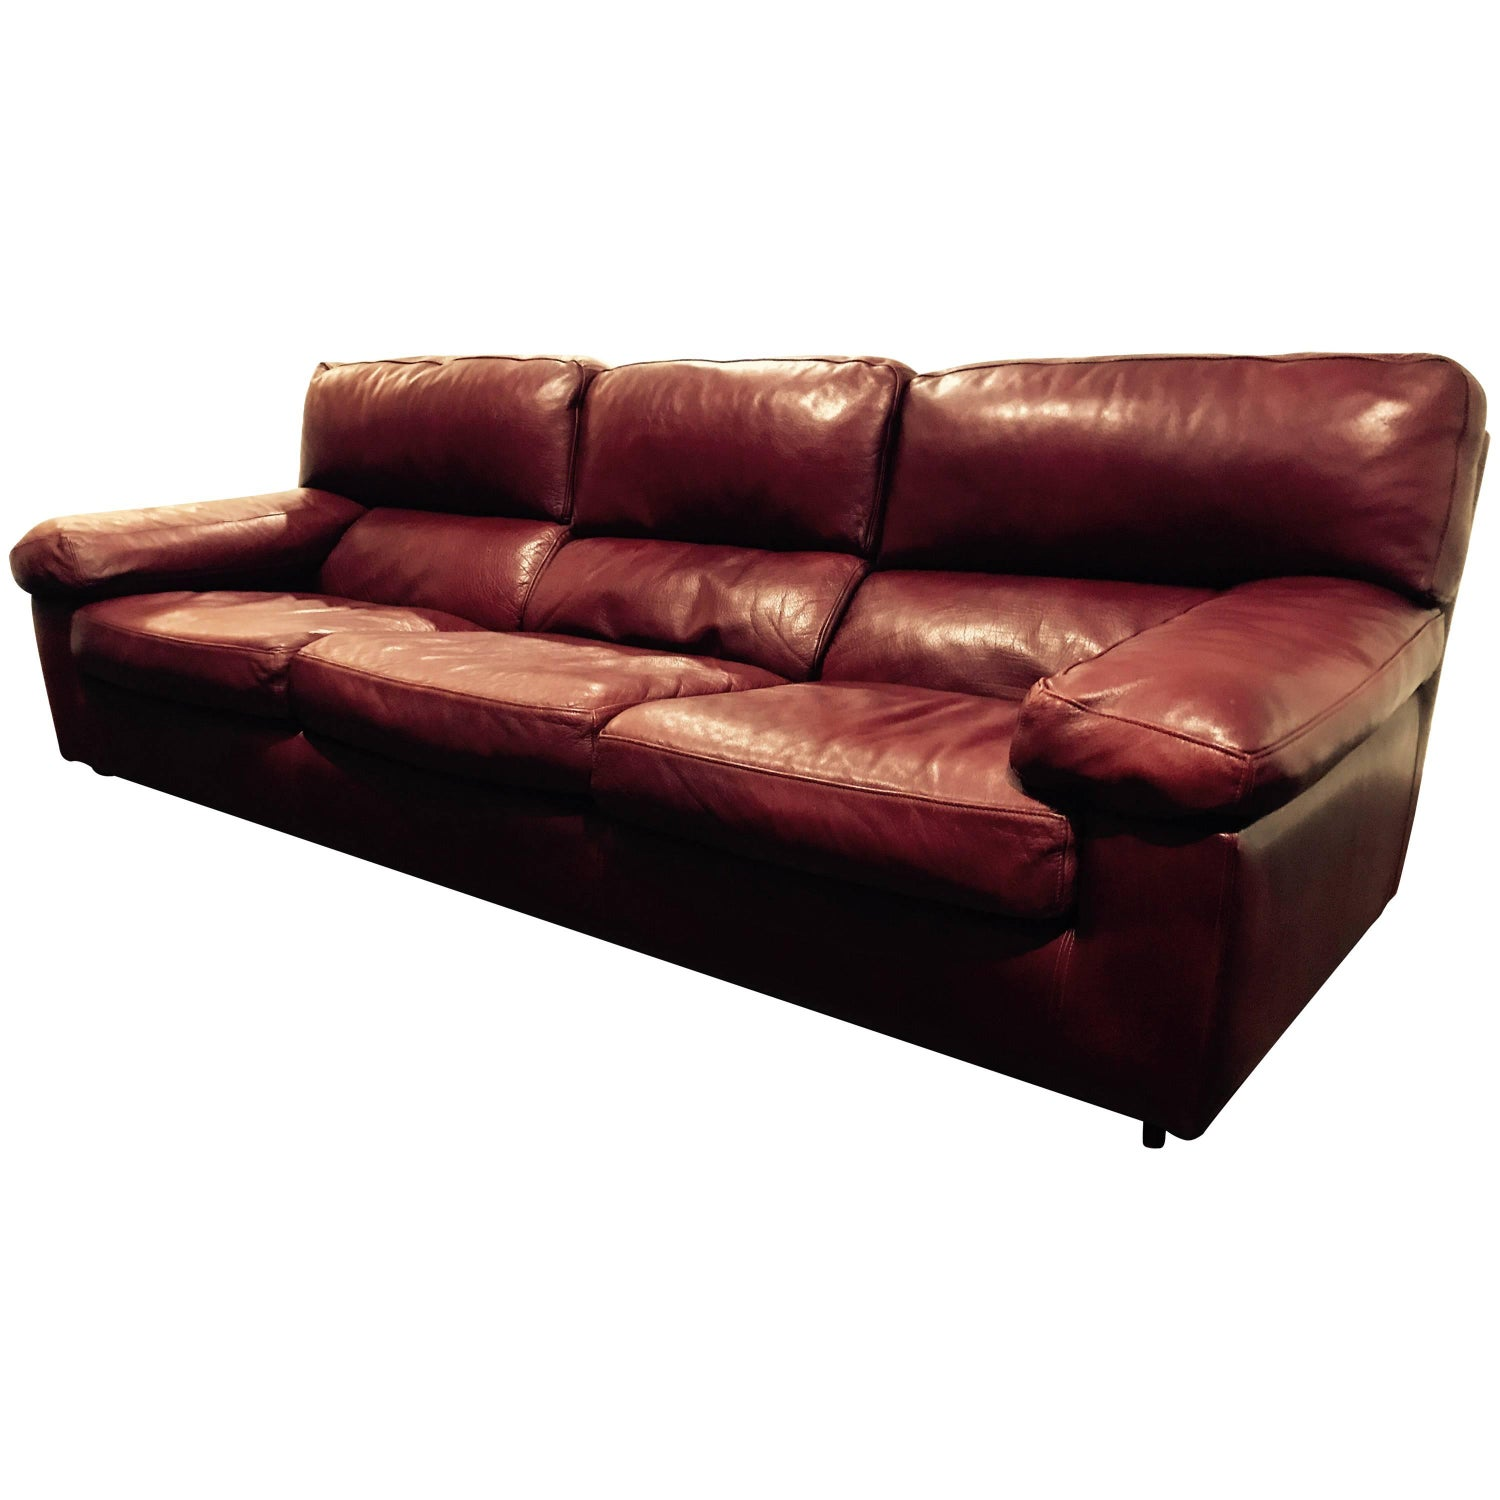 Voyage immobile sofa modern living room with voyage for Canape voyage immobile